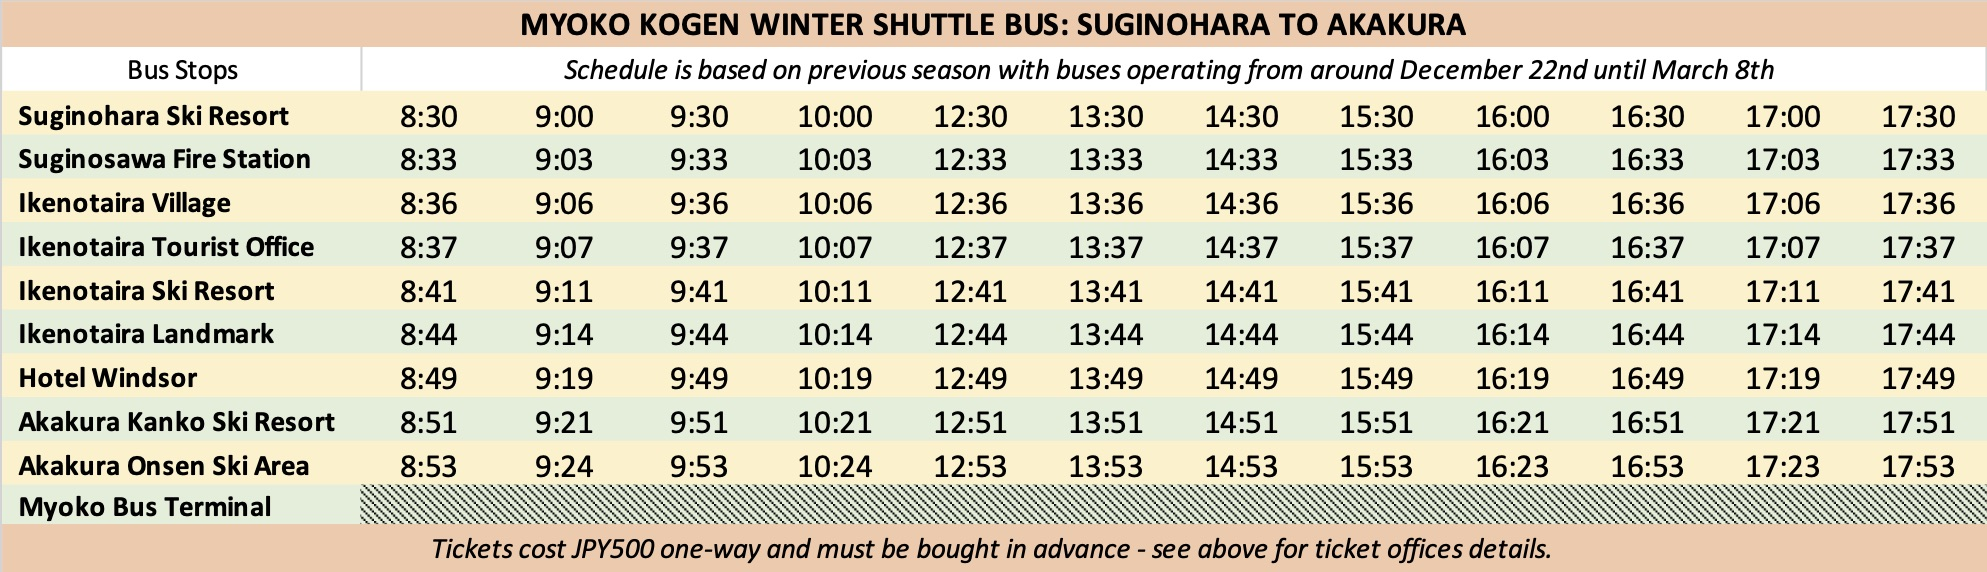 myoko-shuttle-bus-b